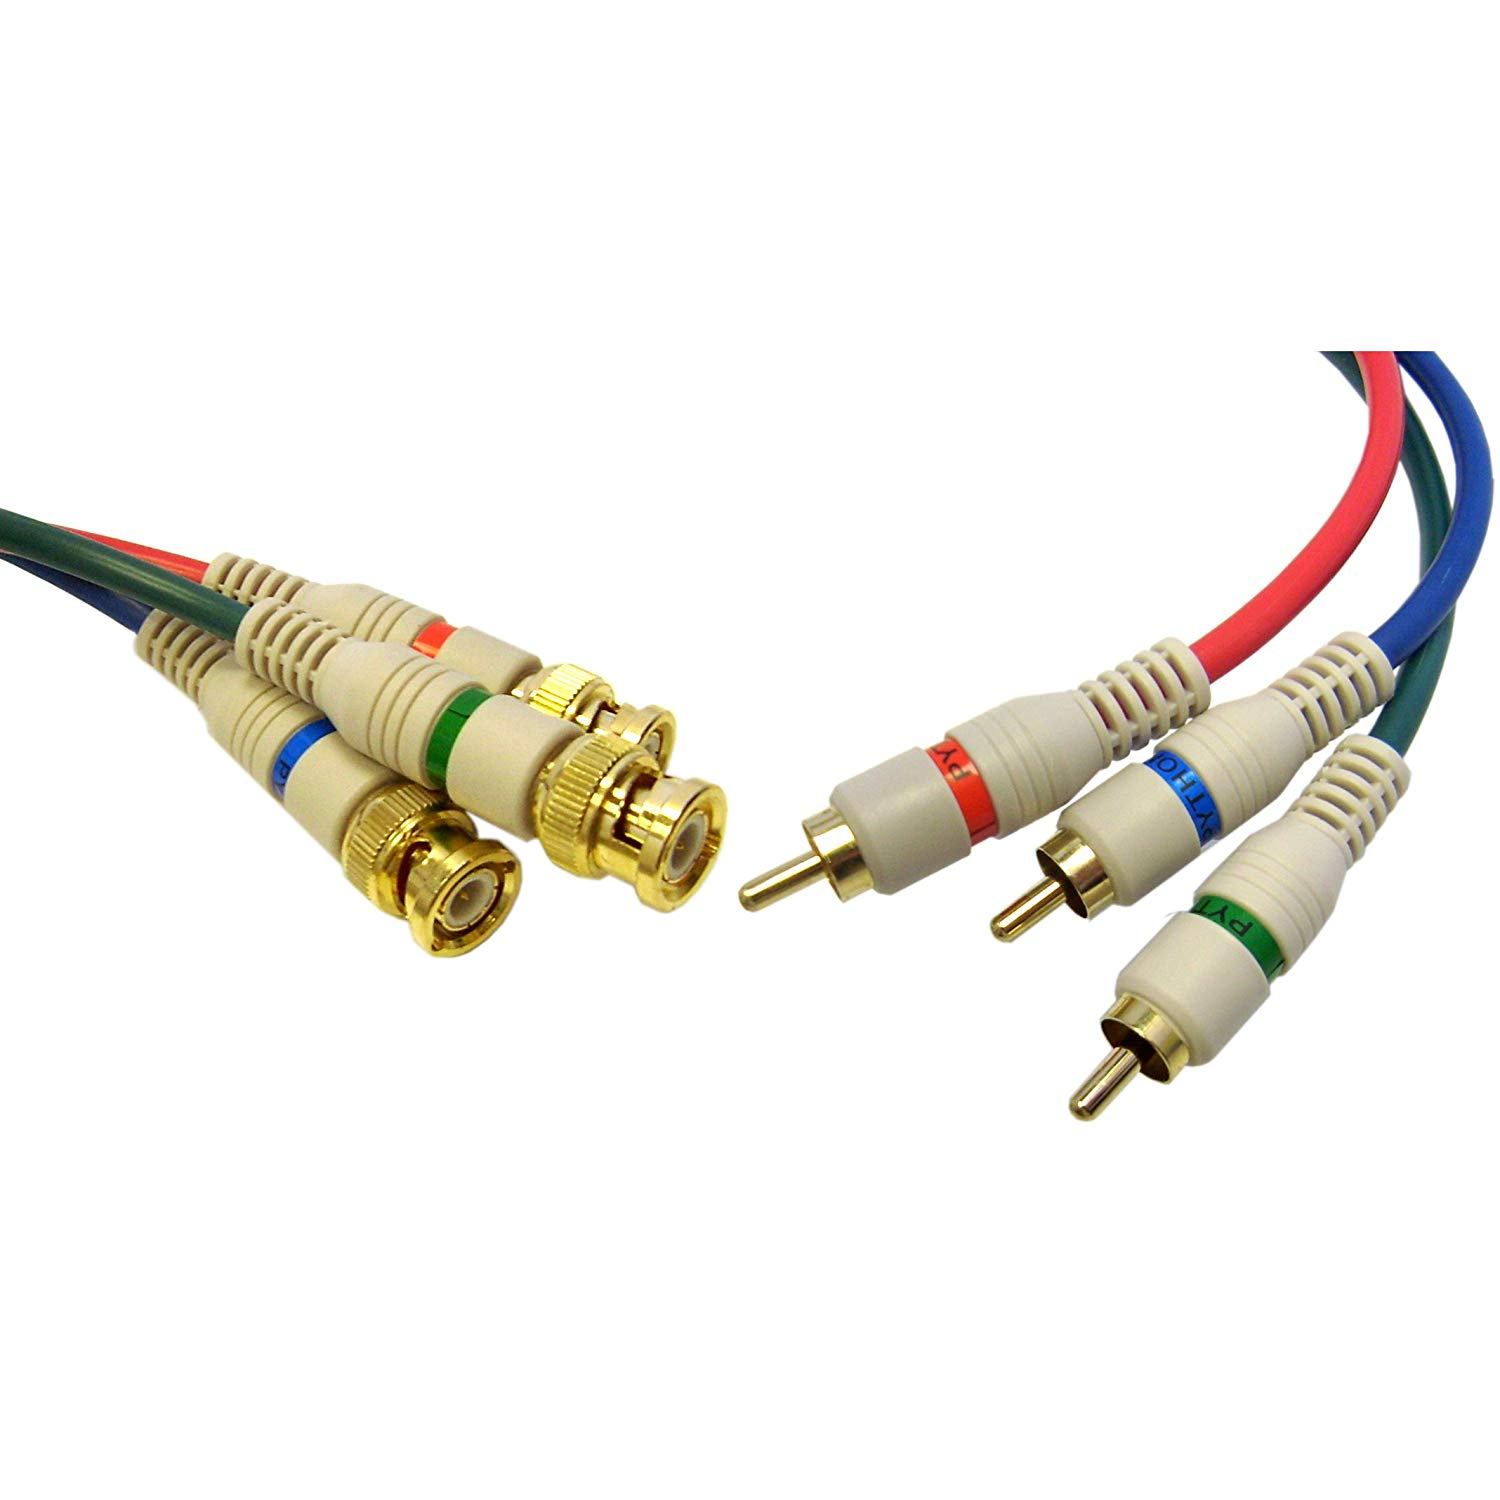 GadKo High Quality Component Video RCA to BNC Component Conversion Cable, 3 RCA Male to 3 BNC Male, 6 foot